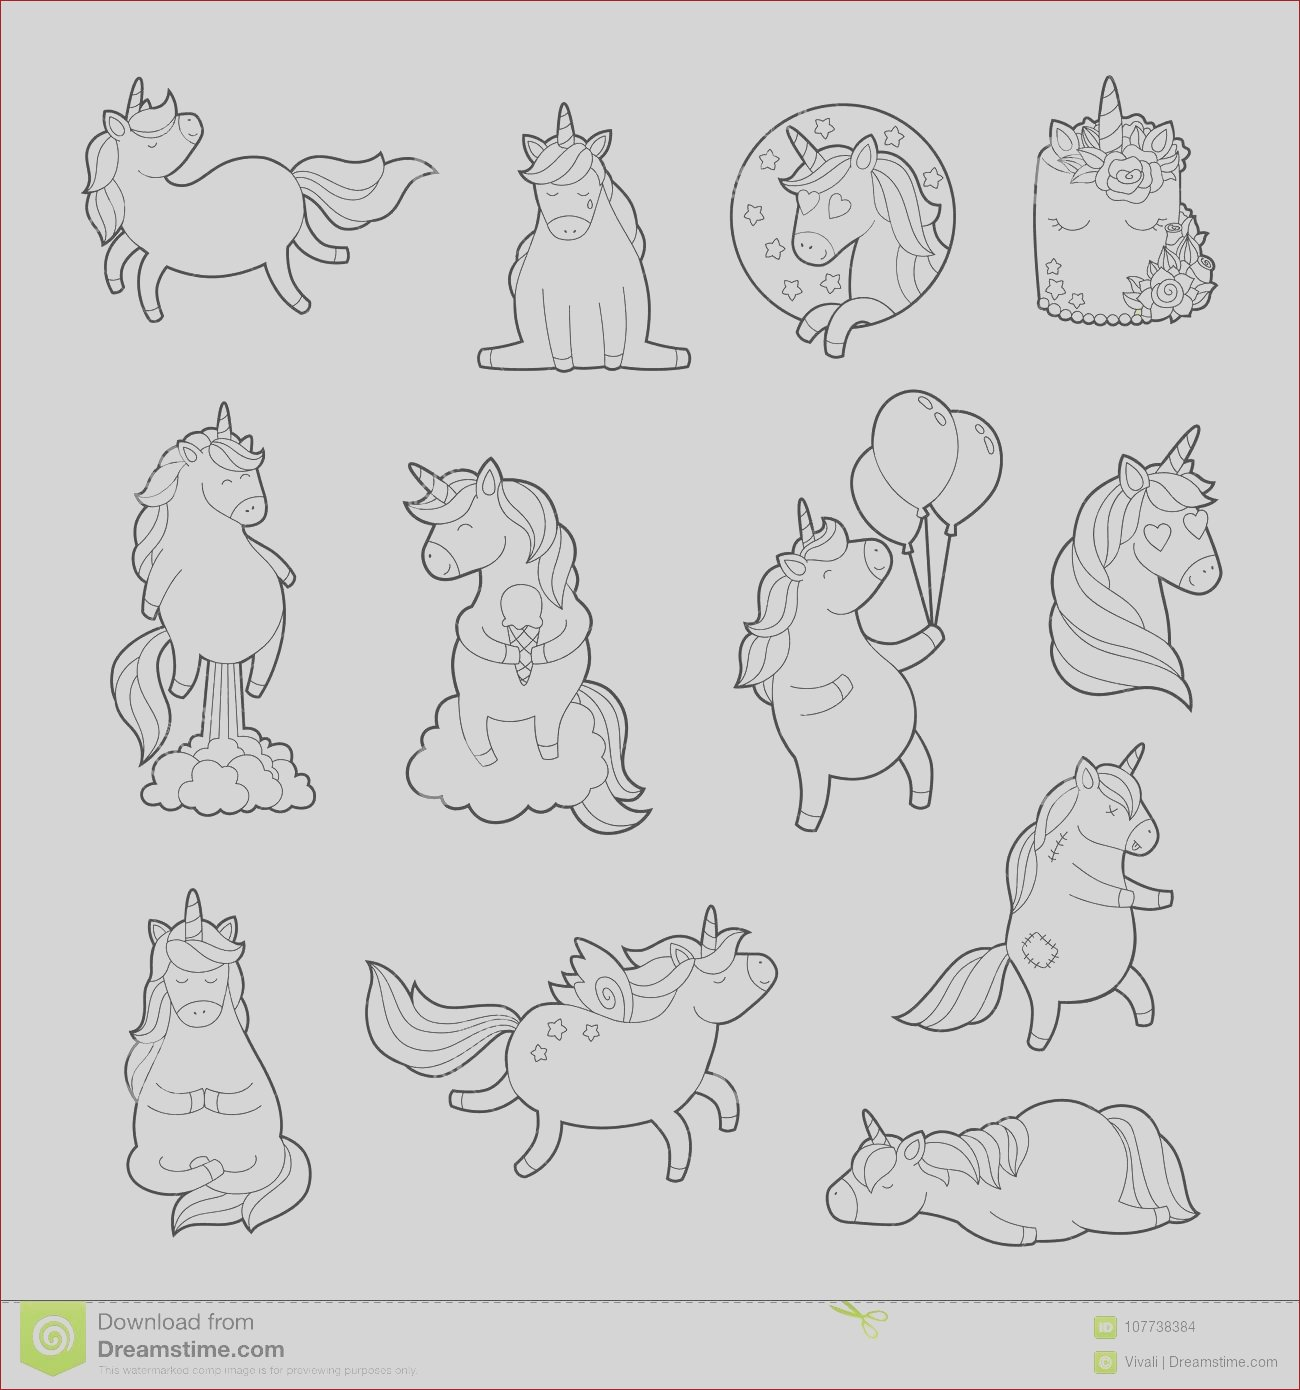 magic unicorn adult coloring pages trendy sticker pack teenage pin set zombie pony vector fashion rainbow different image